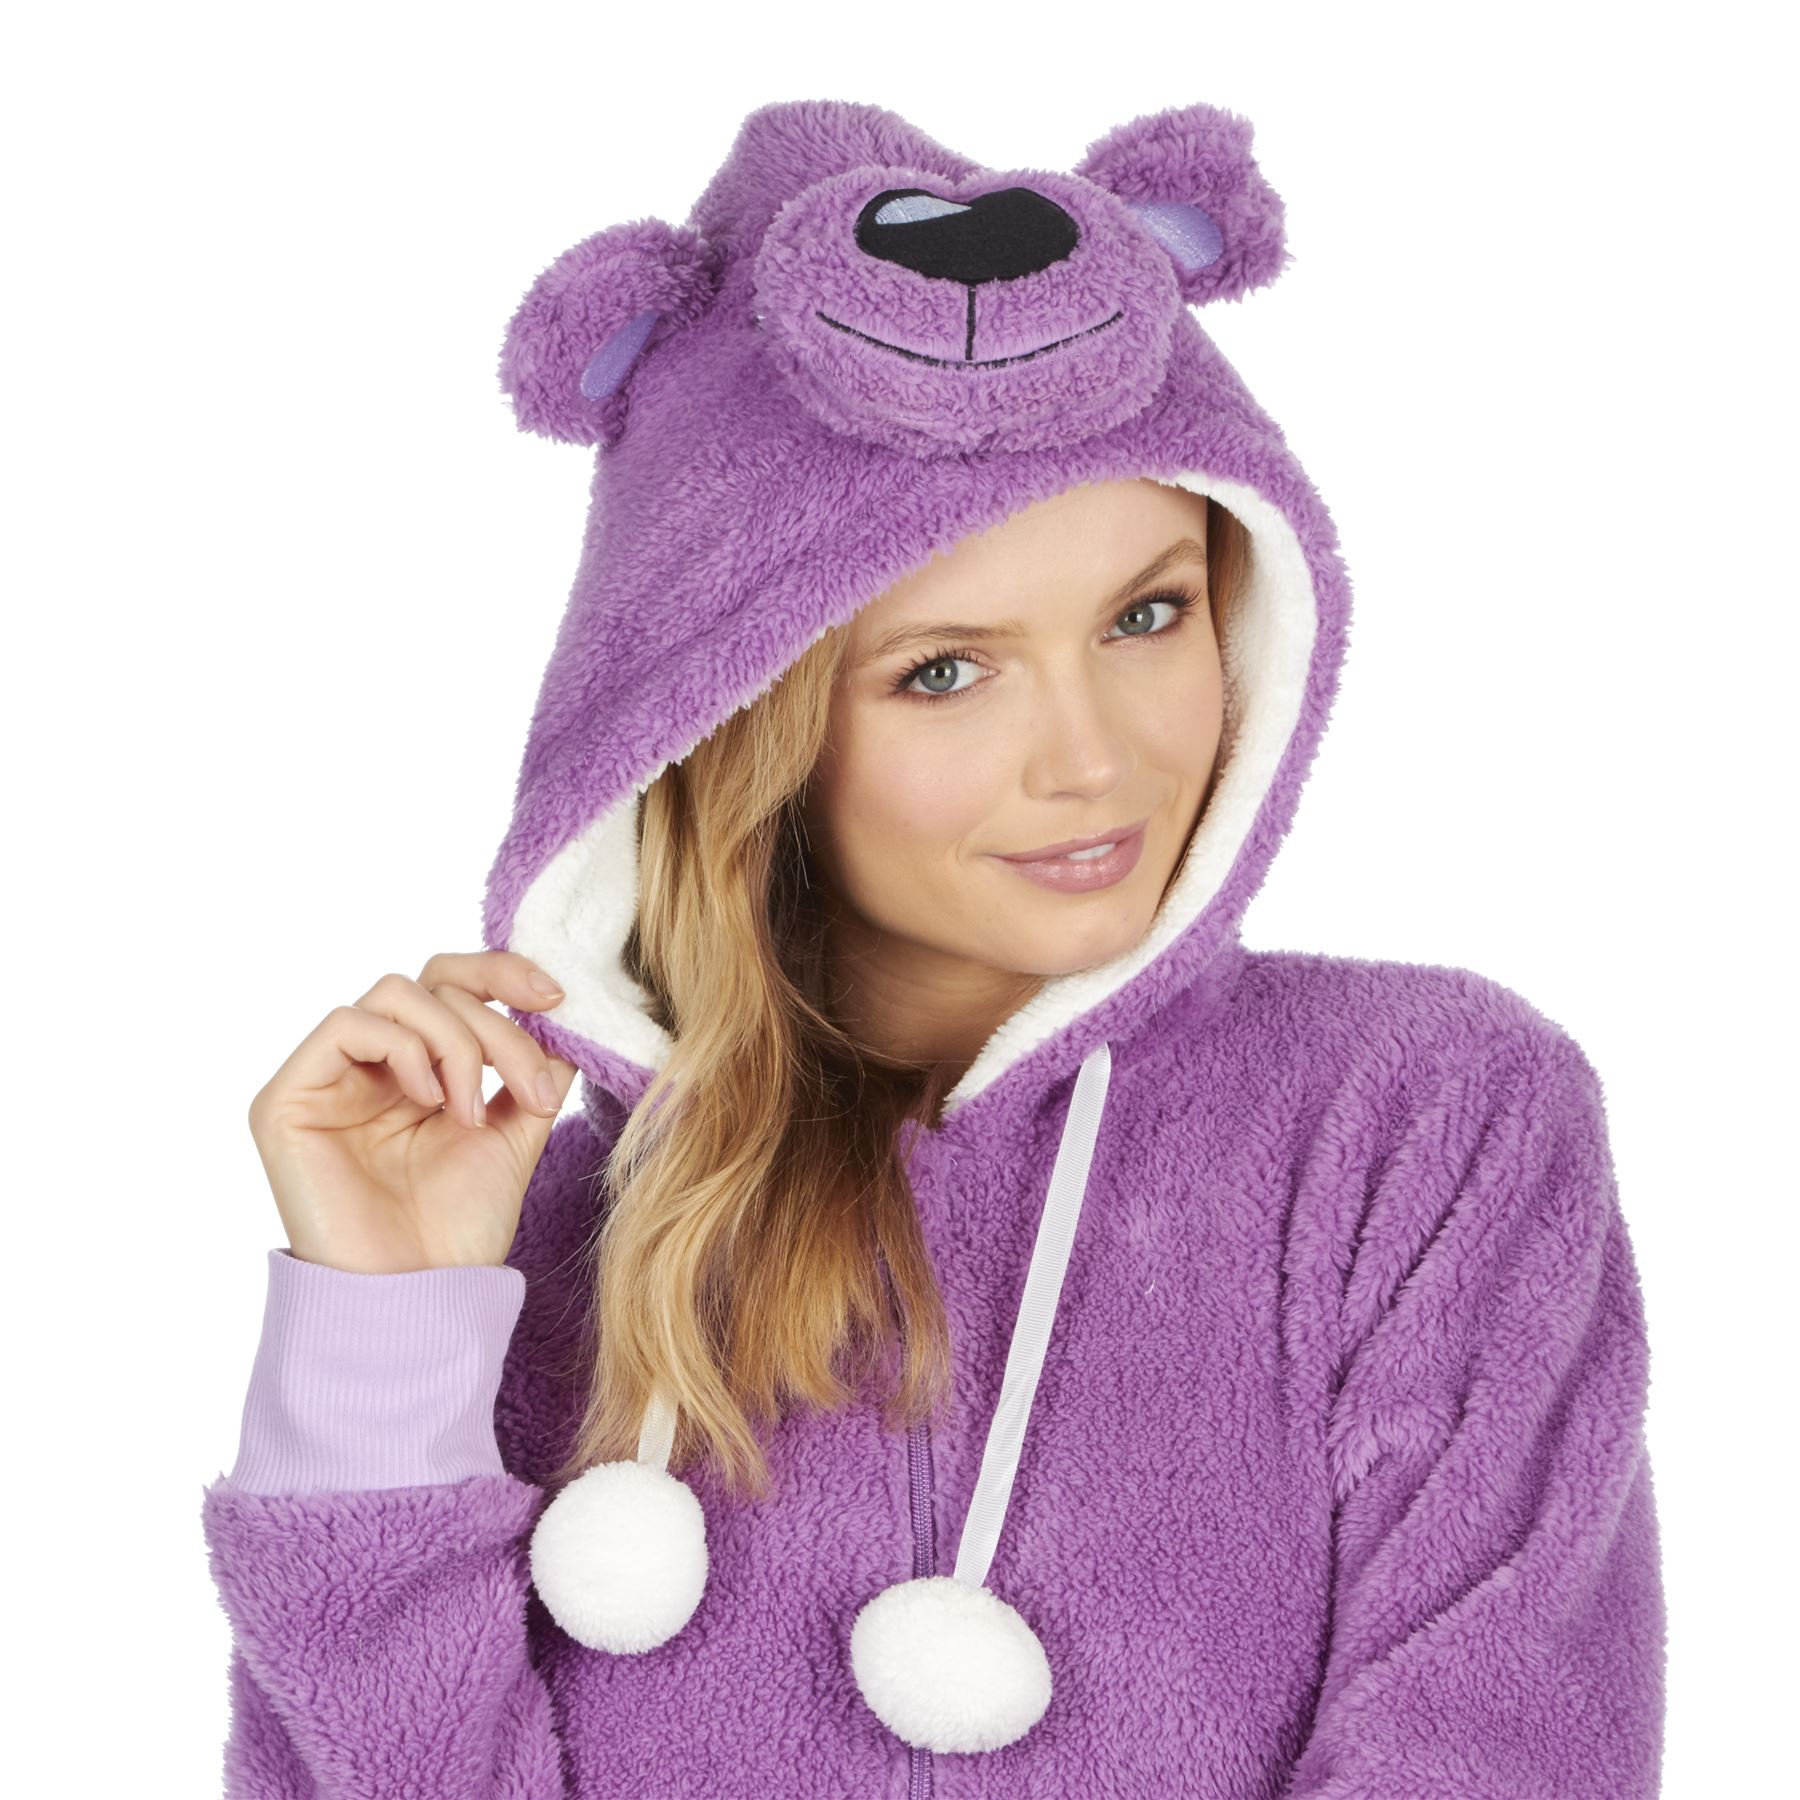 Ladies-Womens-Girls-Fleece-All-In-One-Pyjamas-Outfit-Jumpsuit-Costume-Size-6-18 thumbnail 9